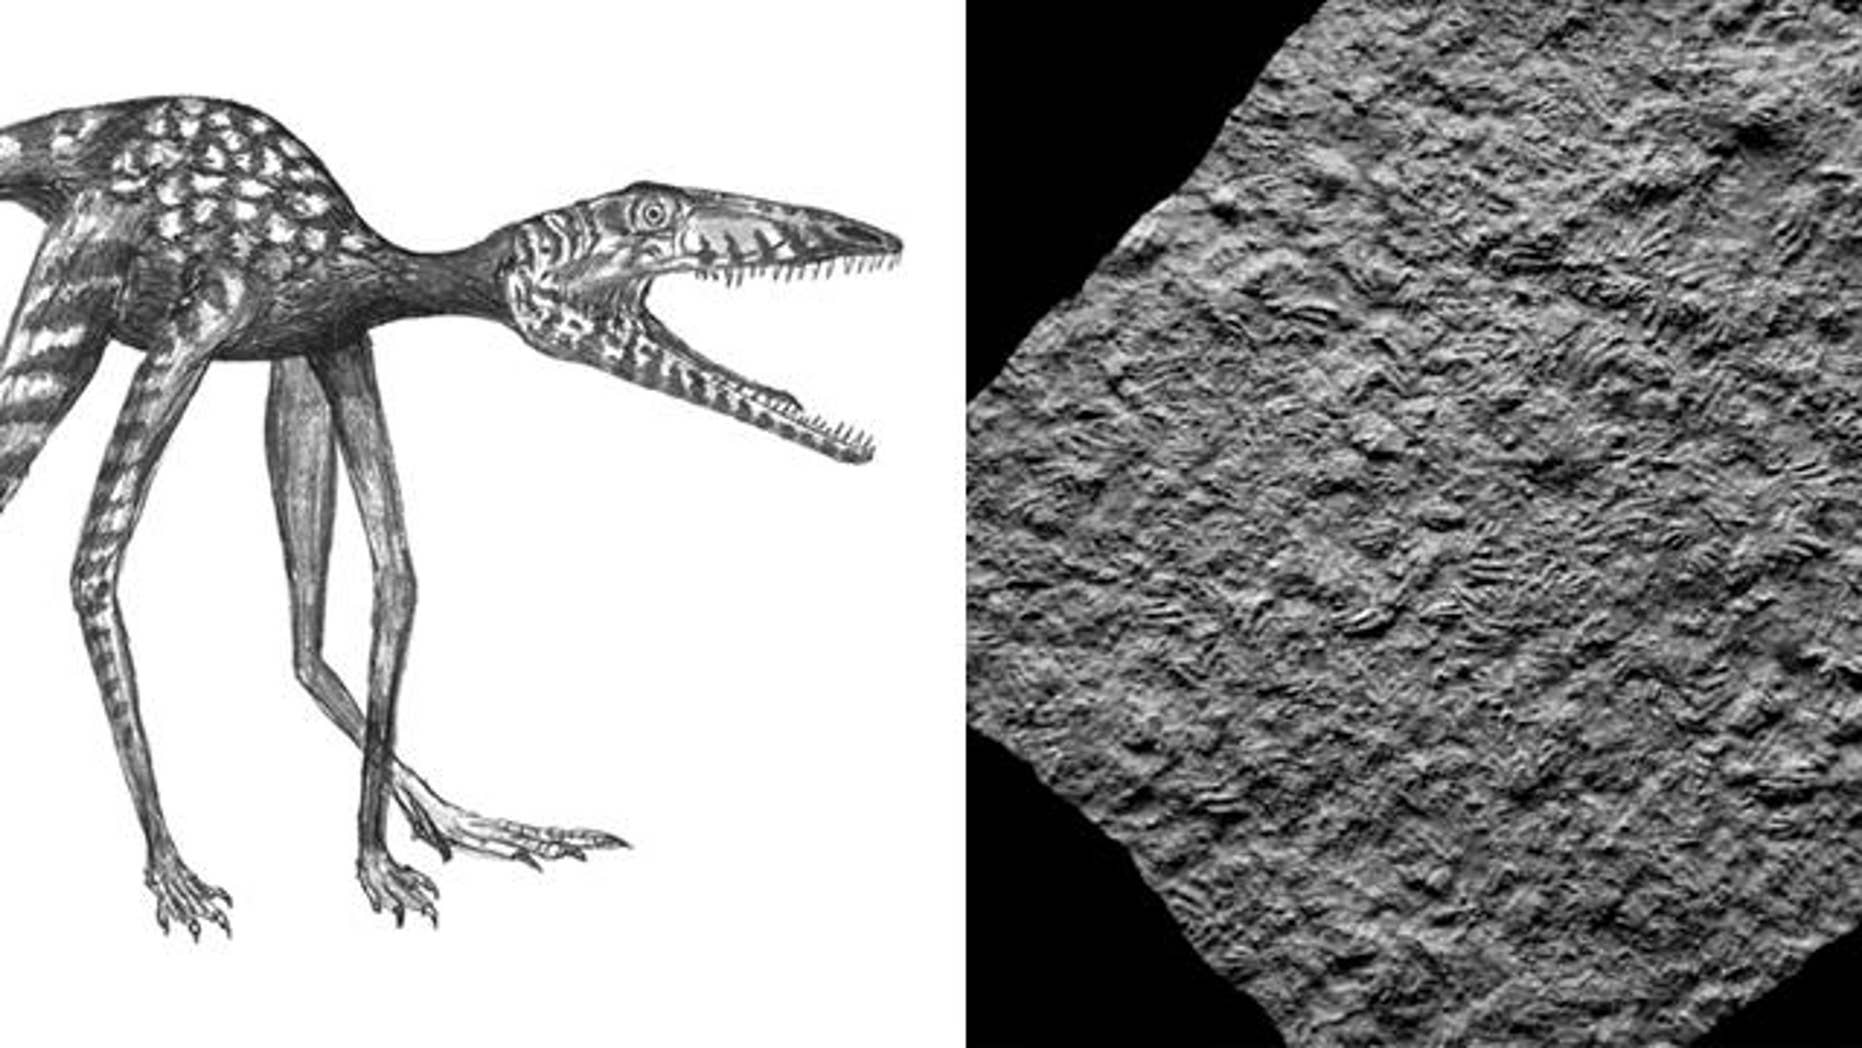 Researchers discovered numerous footprints of the dinosaur Prorotodactylus from the Early Triassic (250 million years ago) of Poland, and now considered the oldest dino prints.